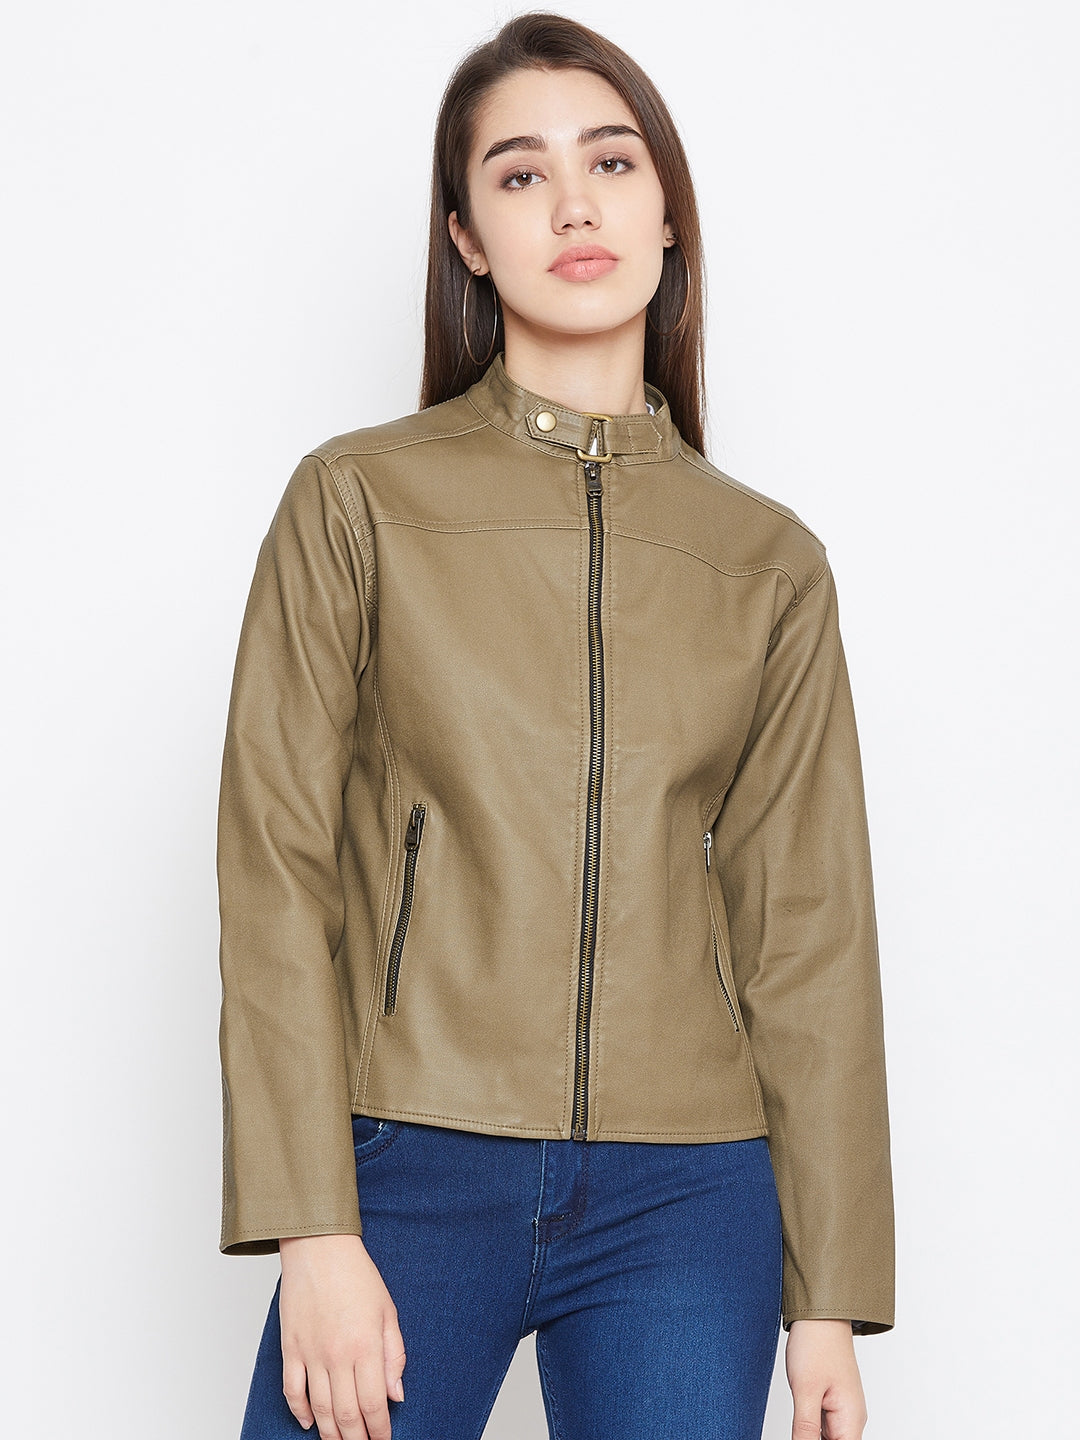 JUMP USA Women Khaki Solid Biker Jacket - JUMP USA